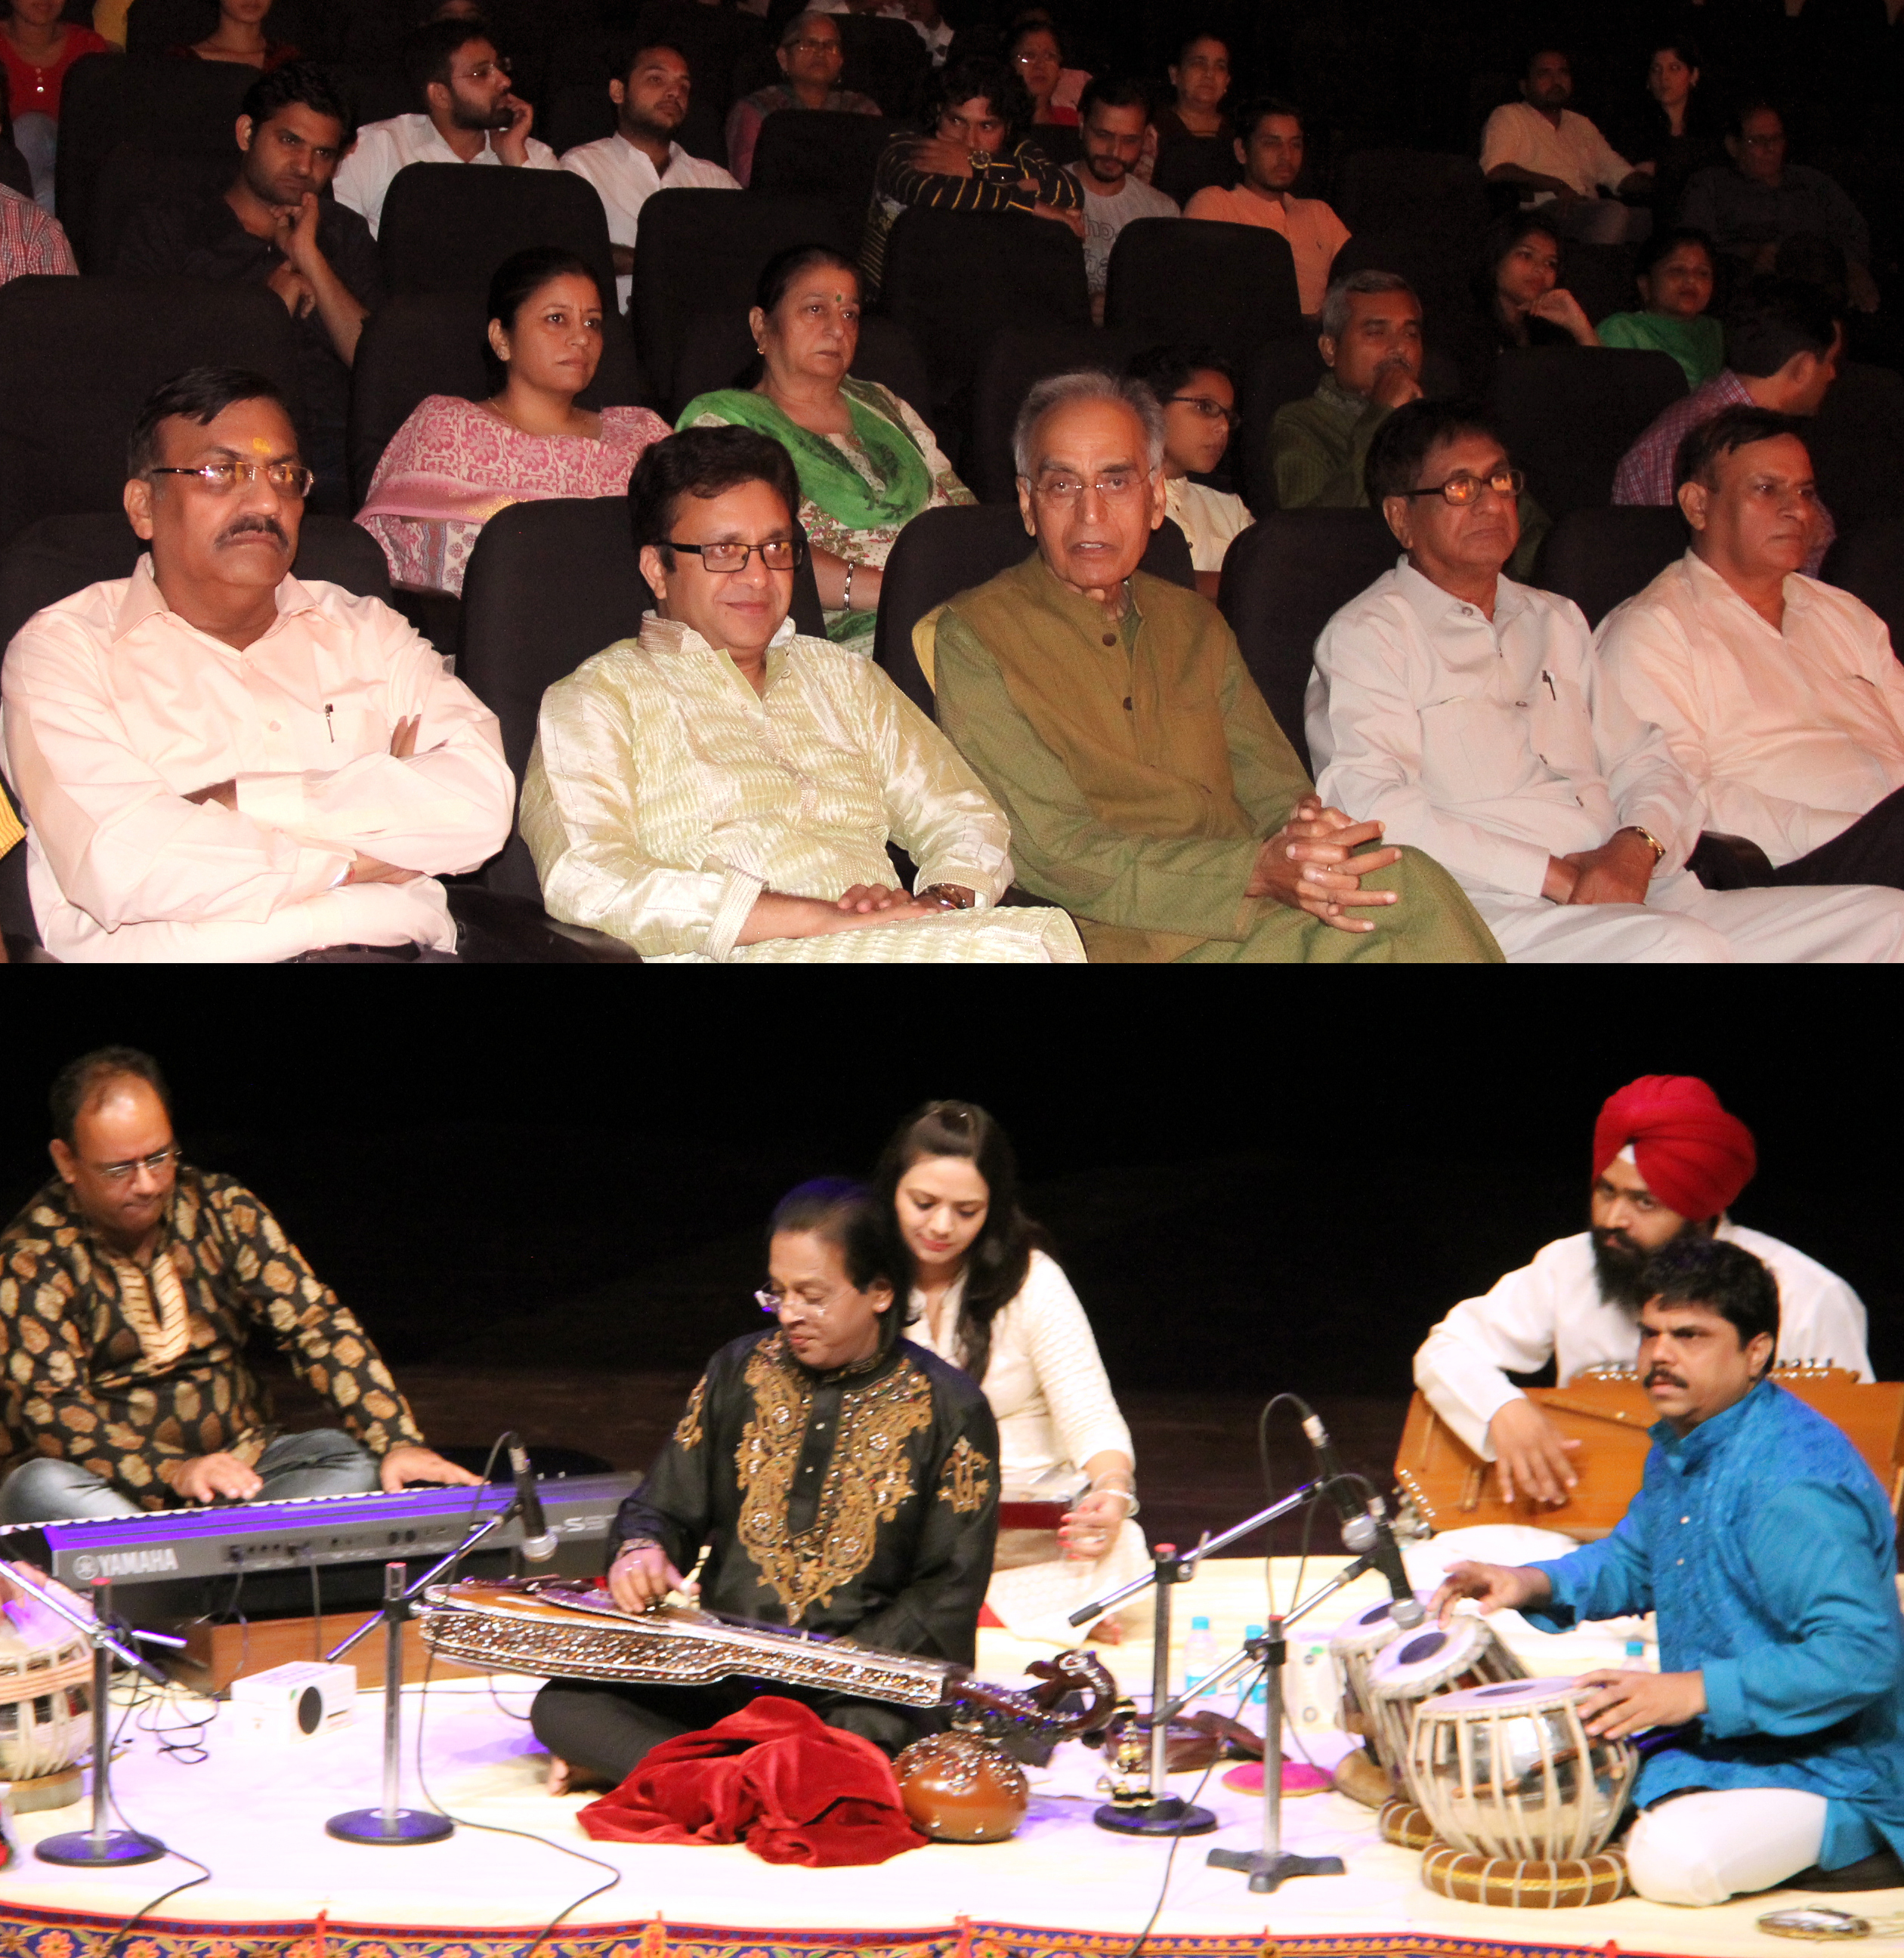 UT Home Secretary, Shri Anurag Agarwal alongwith senior officers witnessing  Swar Ragini Recital by Sh. Subhash Ghosh at Tagore Theatre, Sector-18, Chandigarh on Saturday, October 22, 2016.